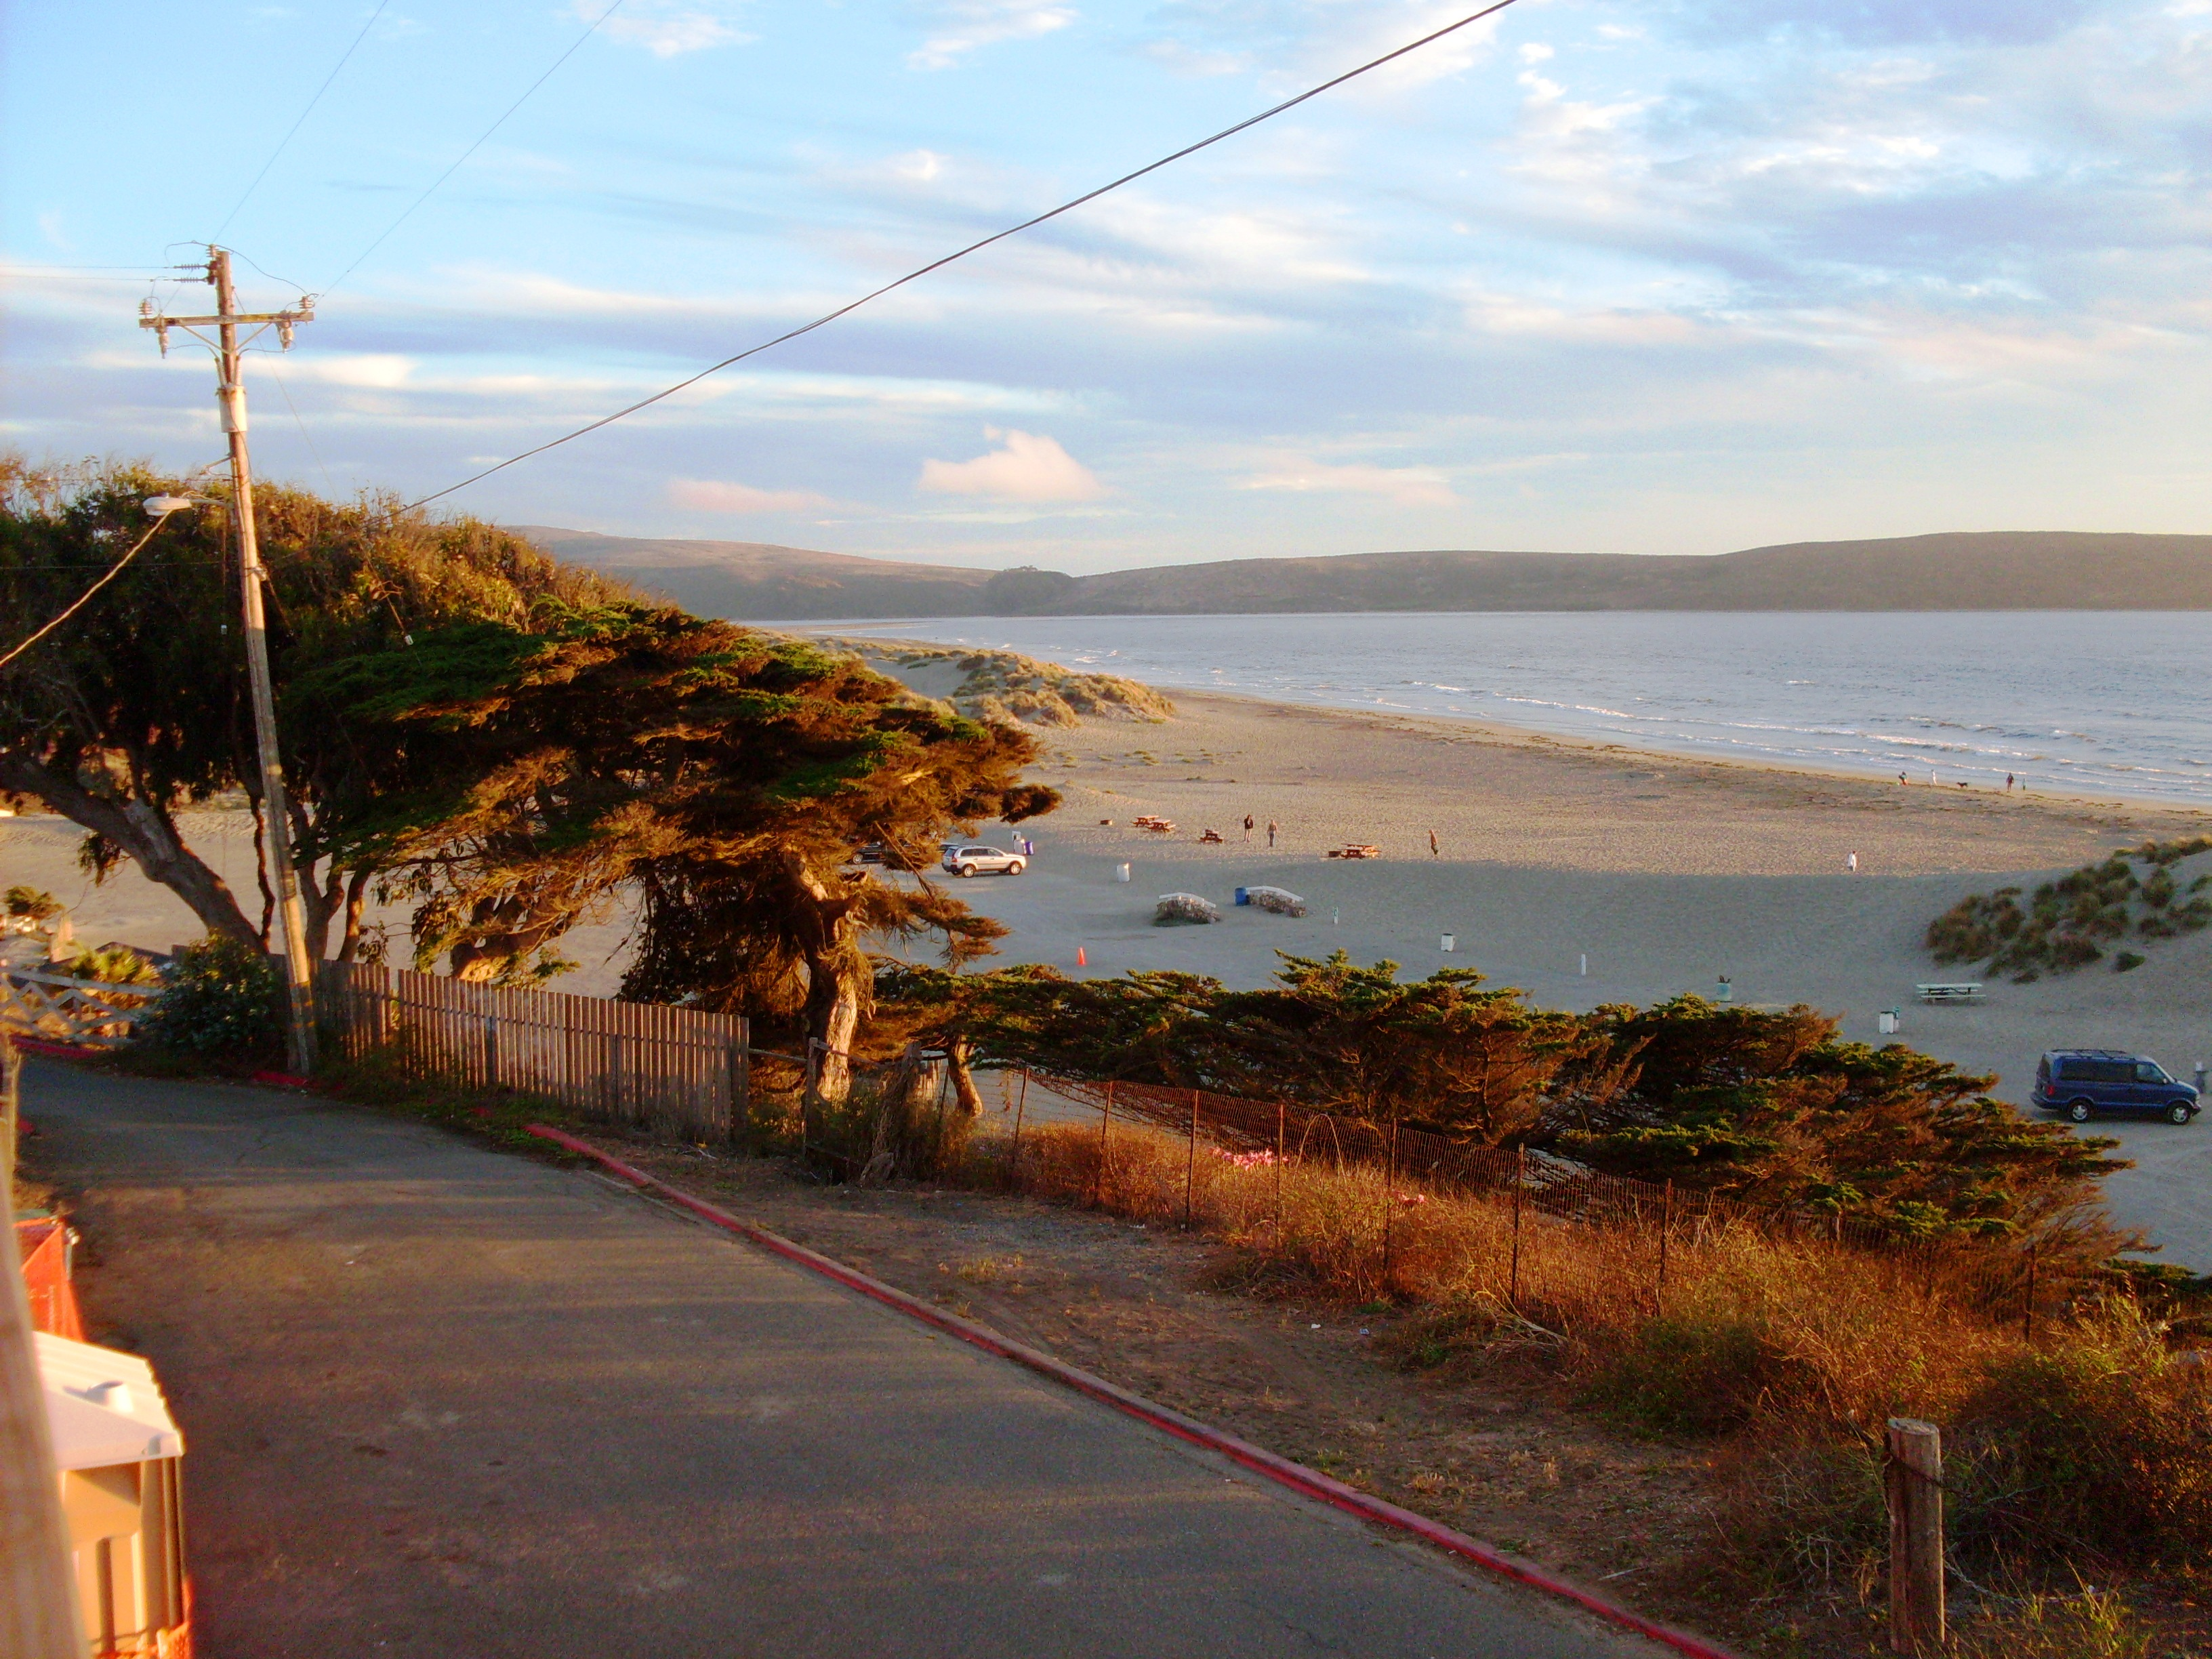 dillon beach Dillon beach rentals offers exclusive and luxurious beach vacation rental homes and cottages at dillon beach ca at affordable prices booking quickly.